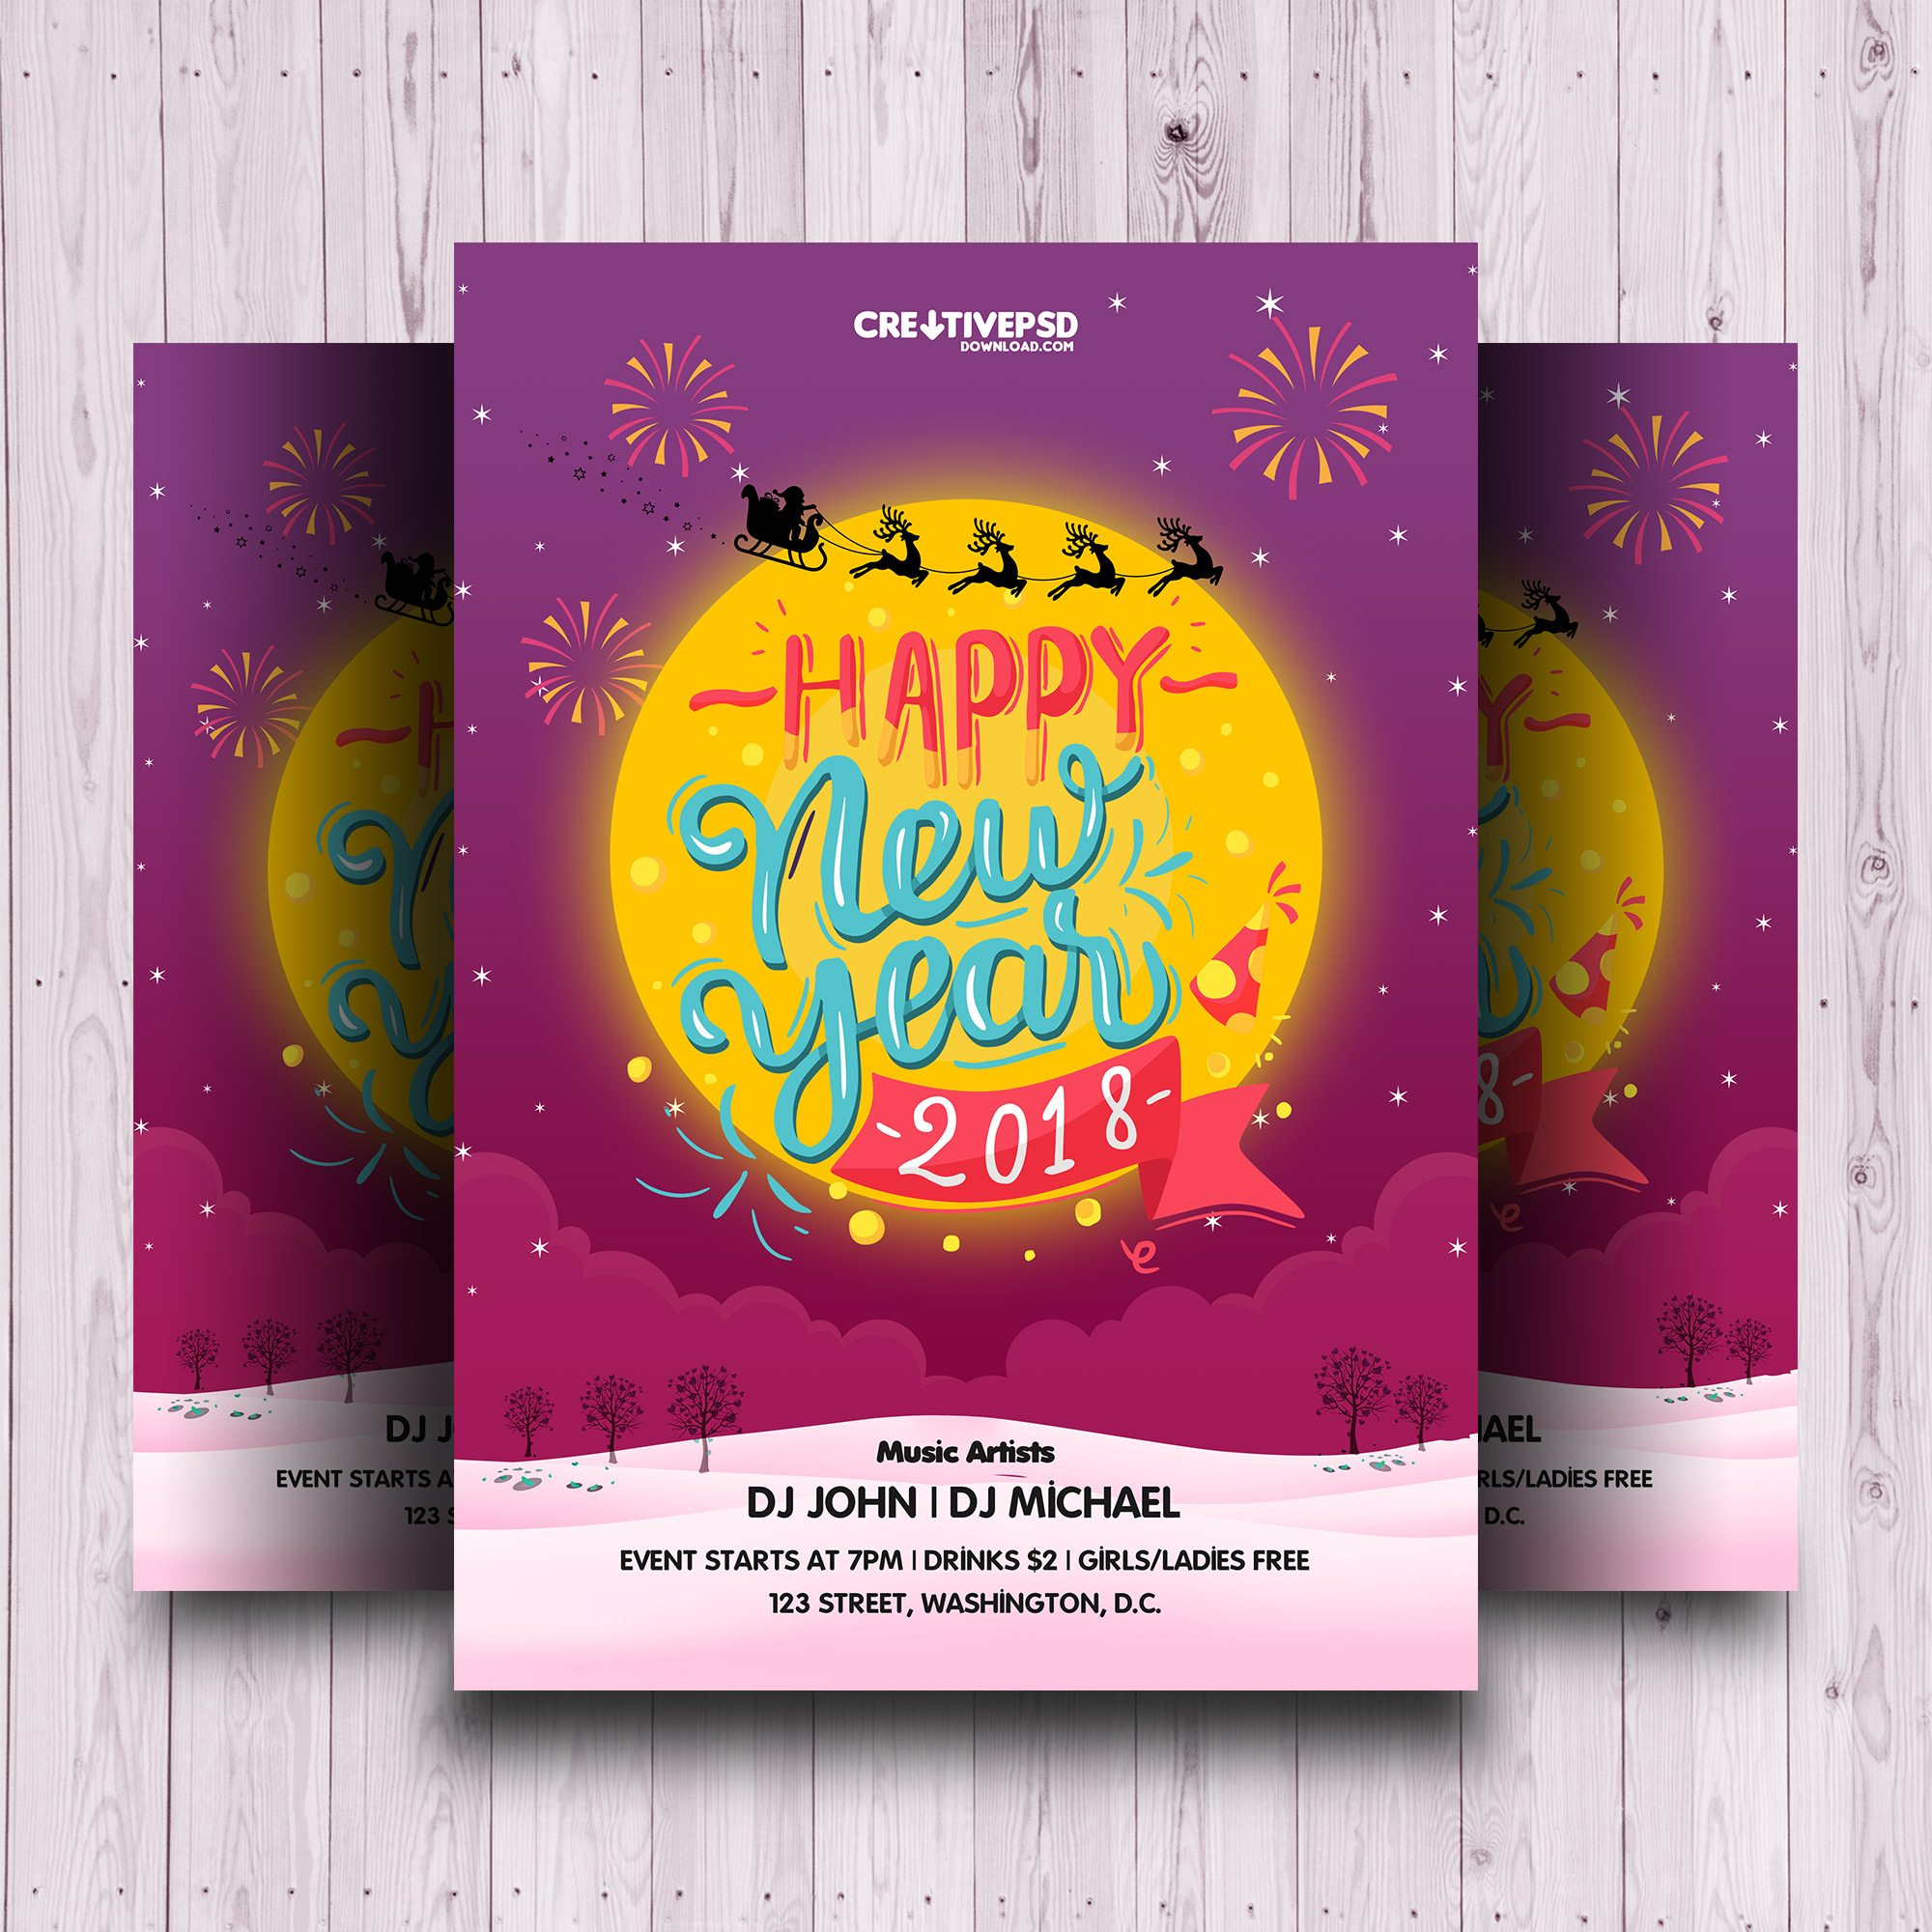 new years eve flyer template, new years eve templates free, new years eve 2017 flyer, new years eve poster templates free, new years eve party poster templates free, new years eve poster designs, new year party poster, new years eve party invitation templates free, 2018 Happy New Year Invitation Flyer PSD